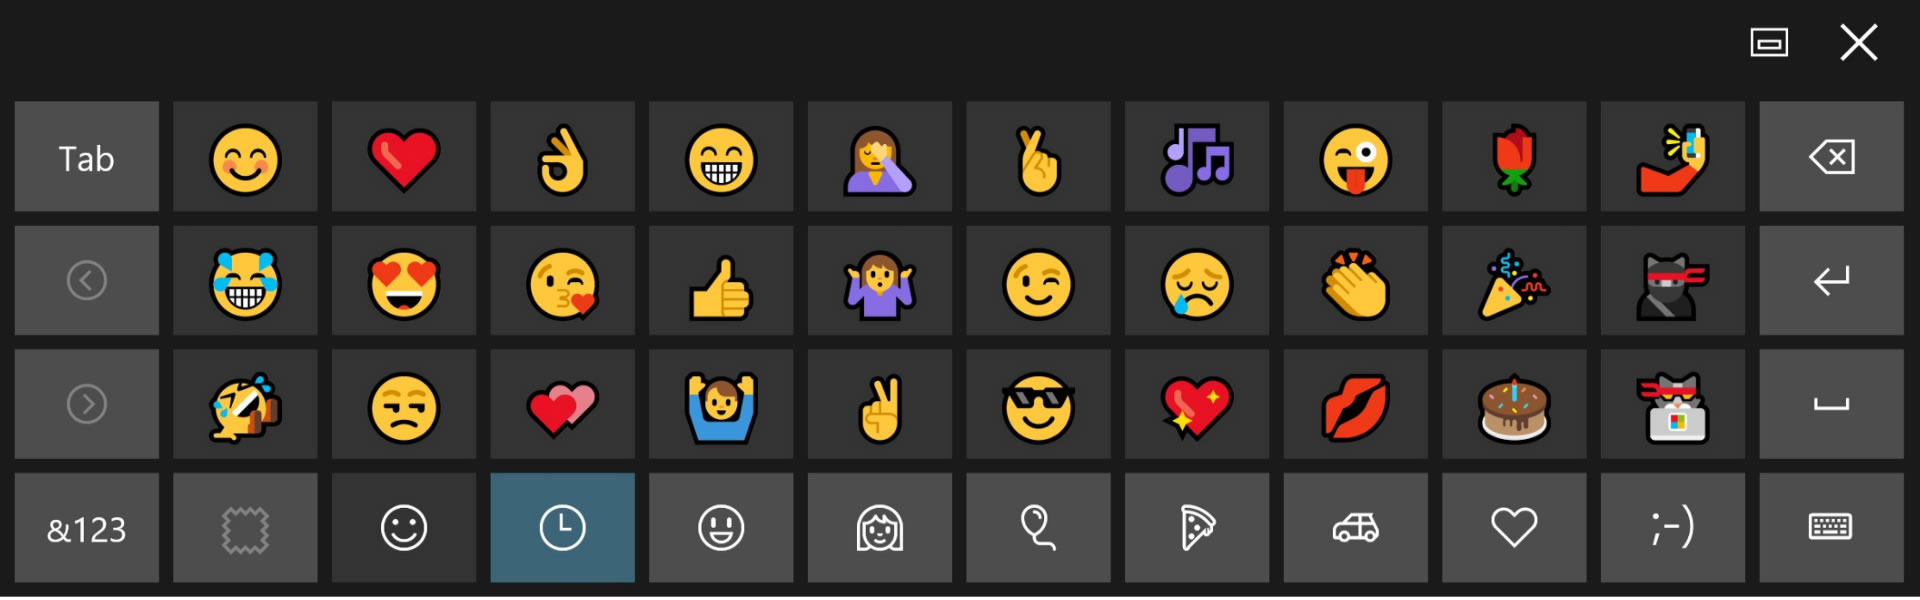 Faccine - Emoticons - Smiles